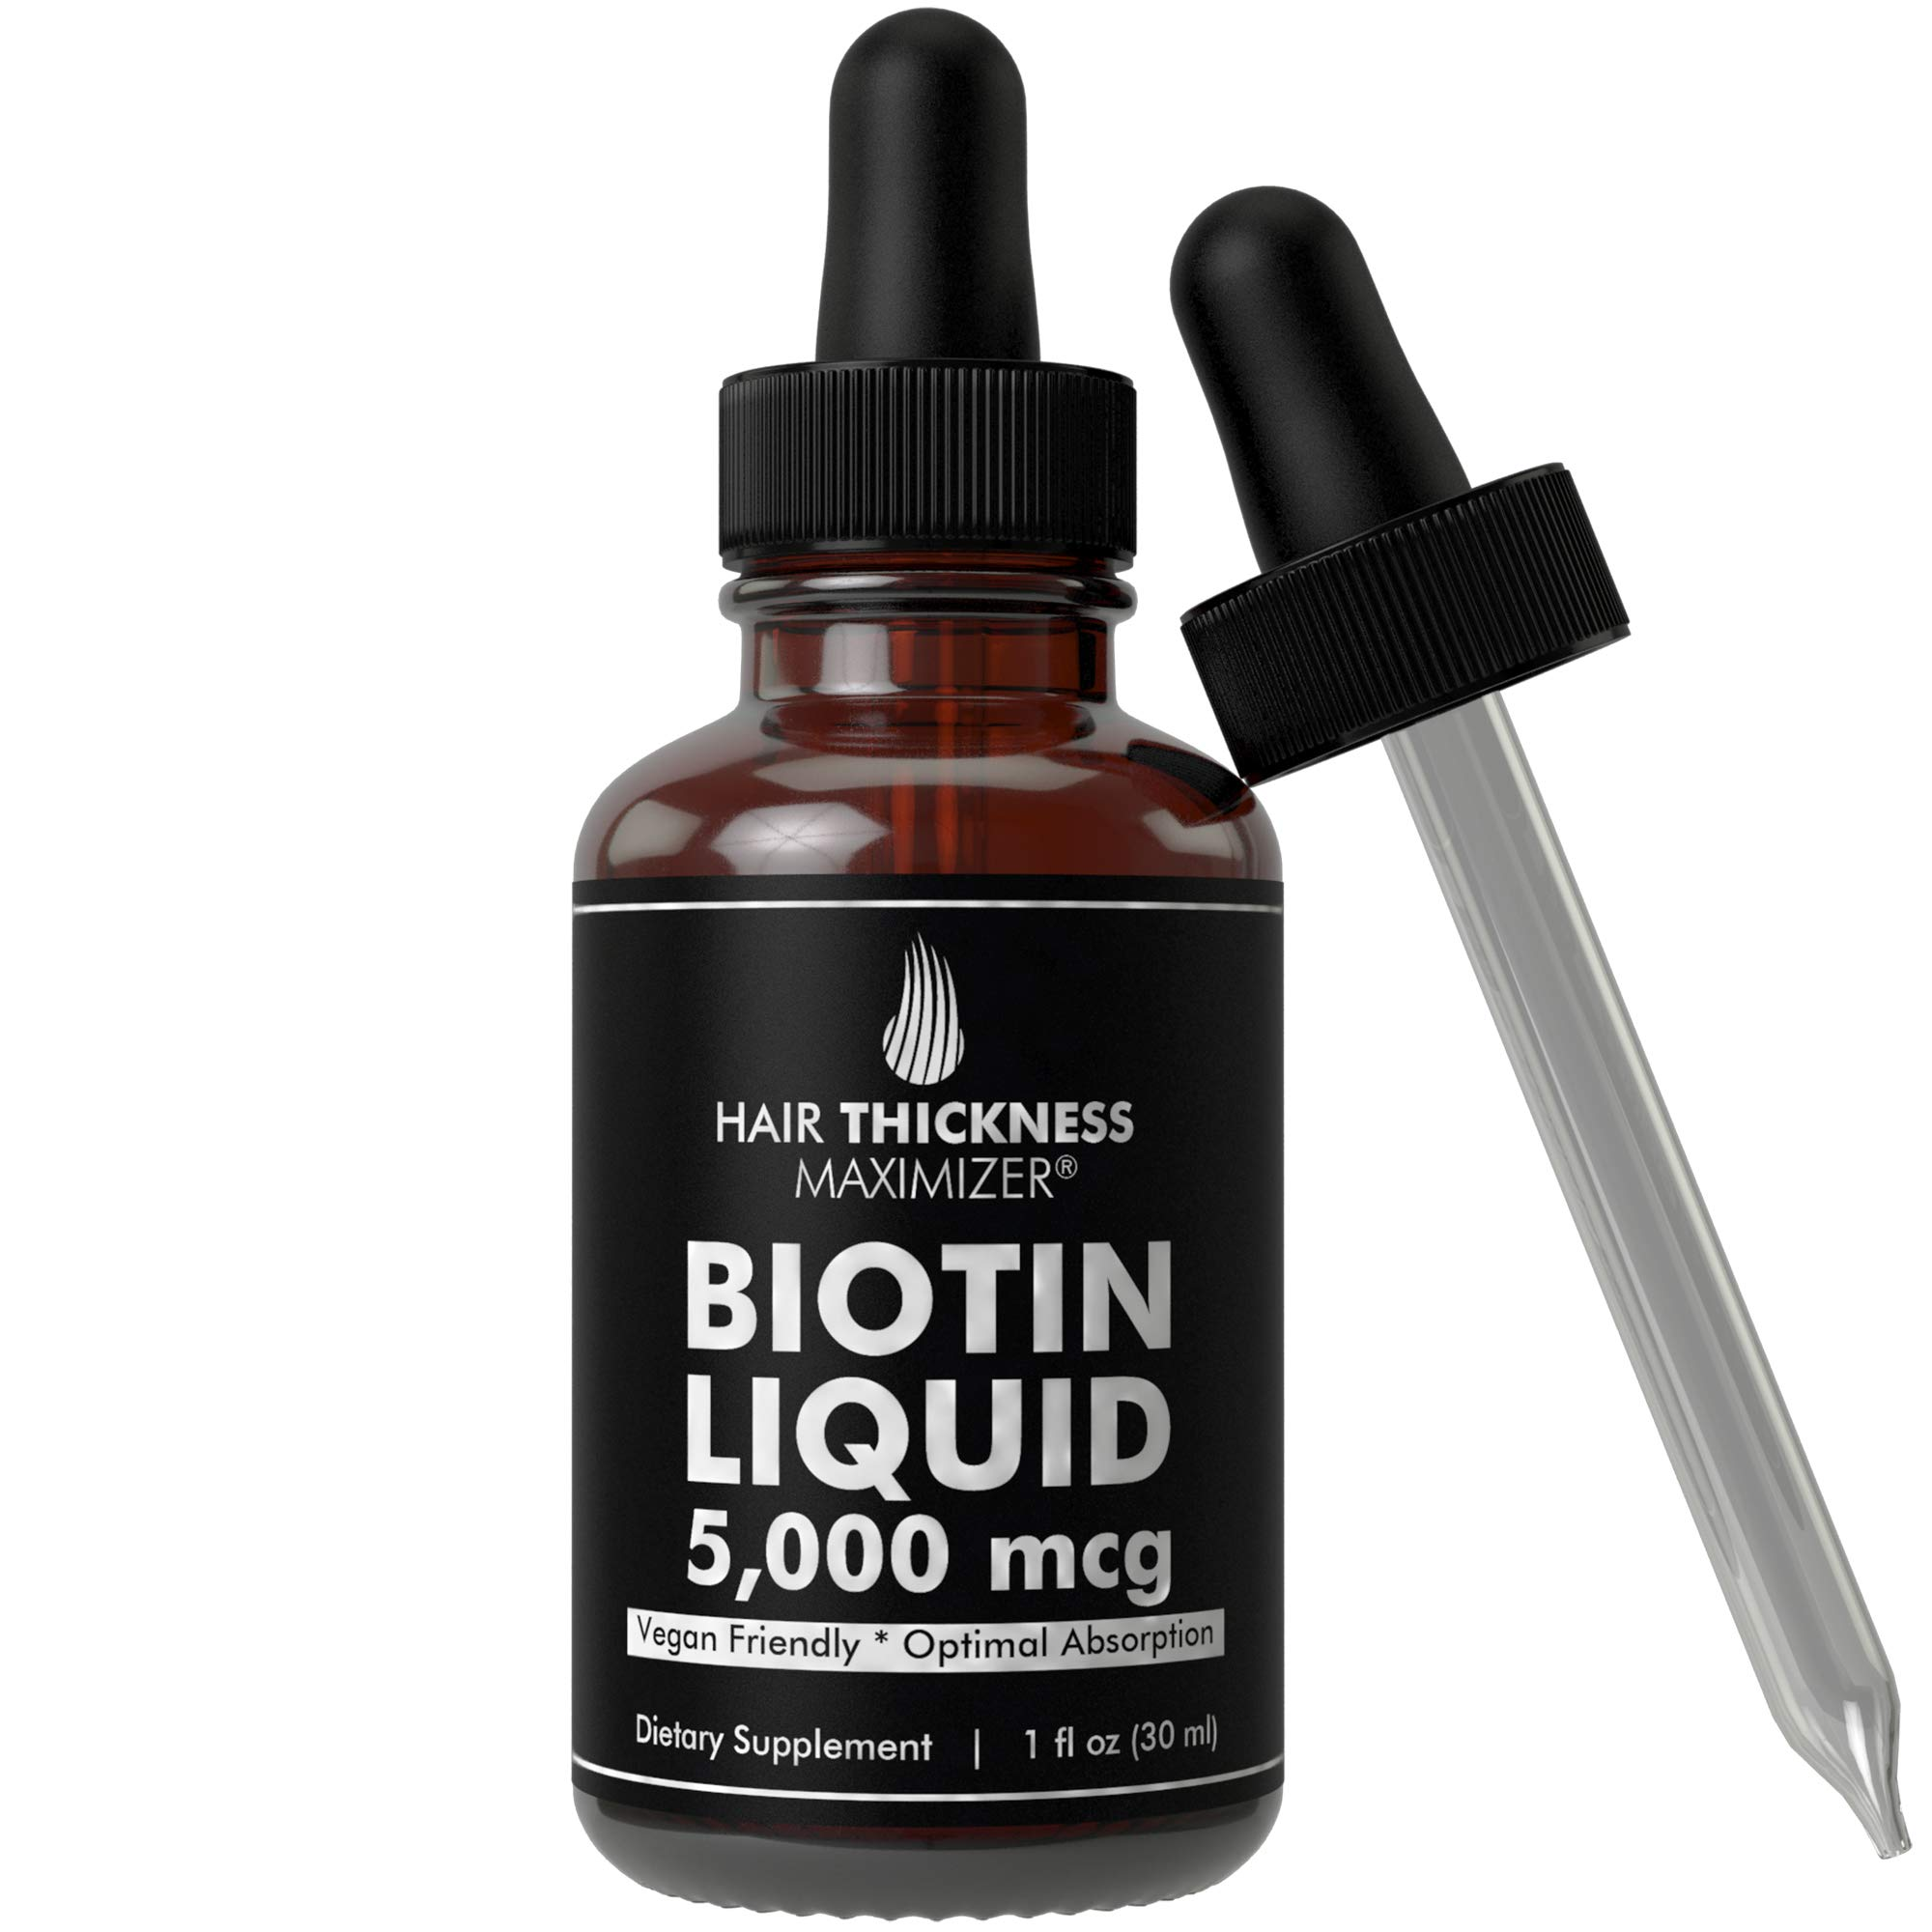 Liquid Vegan BIOTIN Drops 5000 MCG by Hair Thickness Maximizer. 30 to 60 Servings for Stronger, Thicker Hair. Made in USA. Combat Hair Loss + Thinning Hair. HIGH Absorption